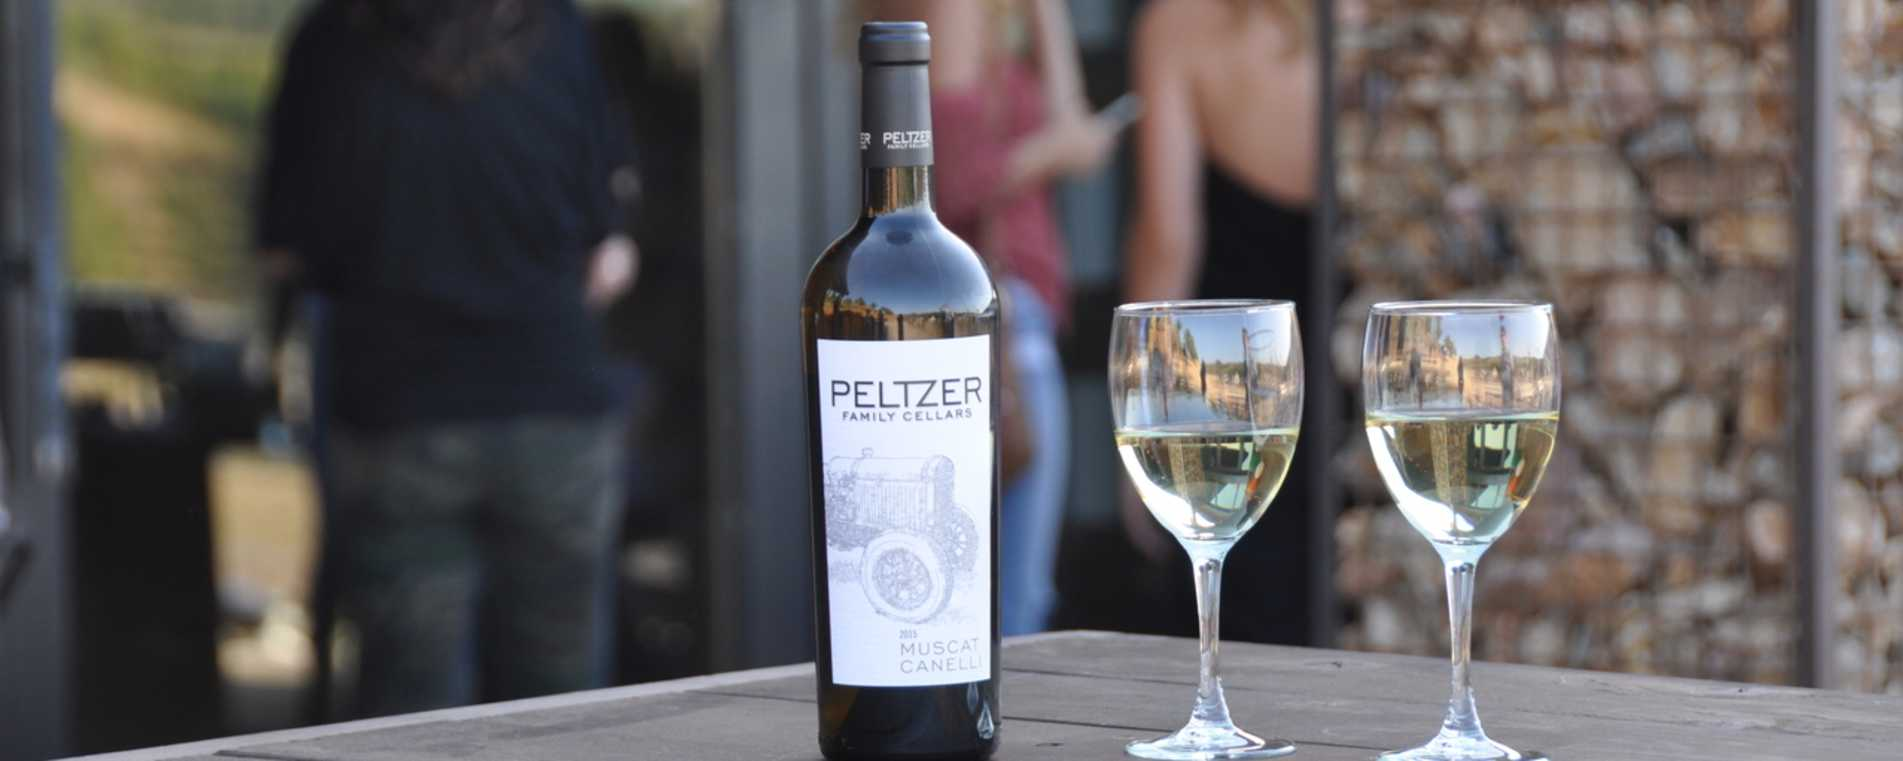 Wine - Peltzer Farms